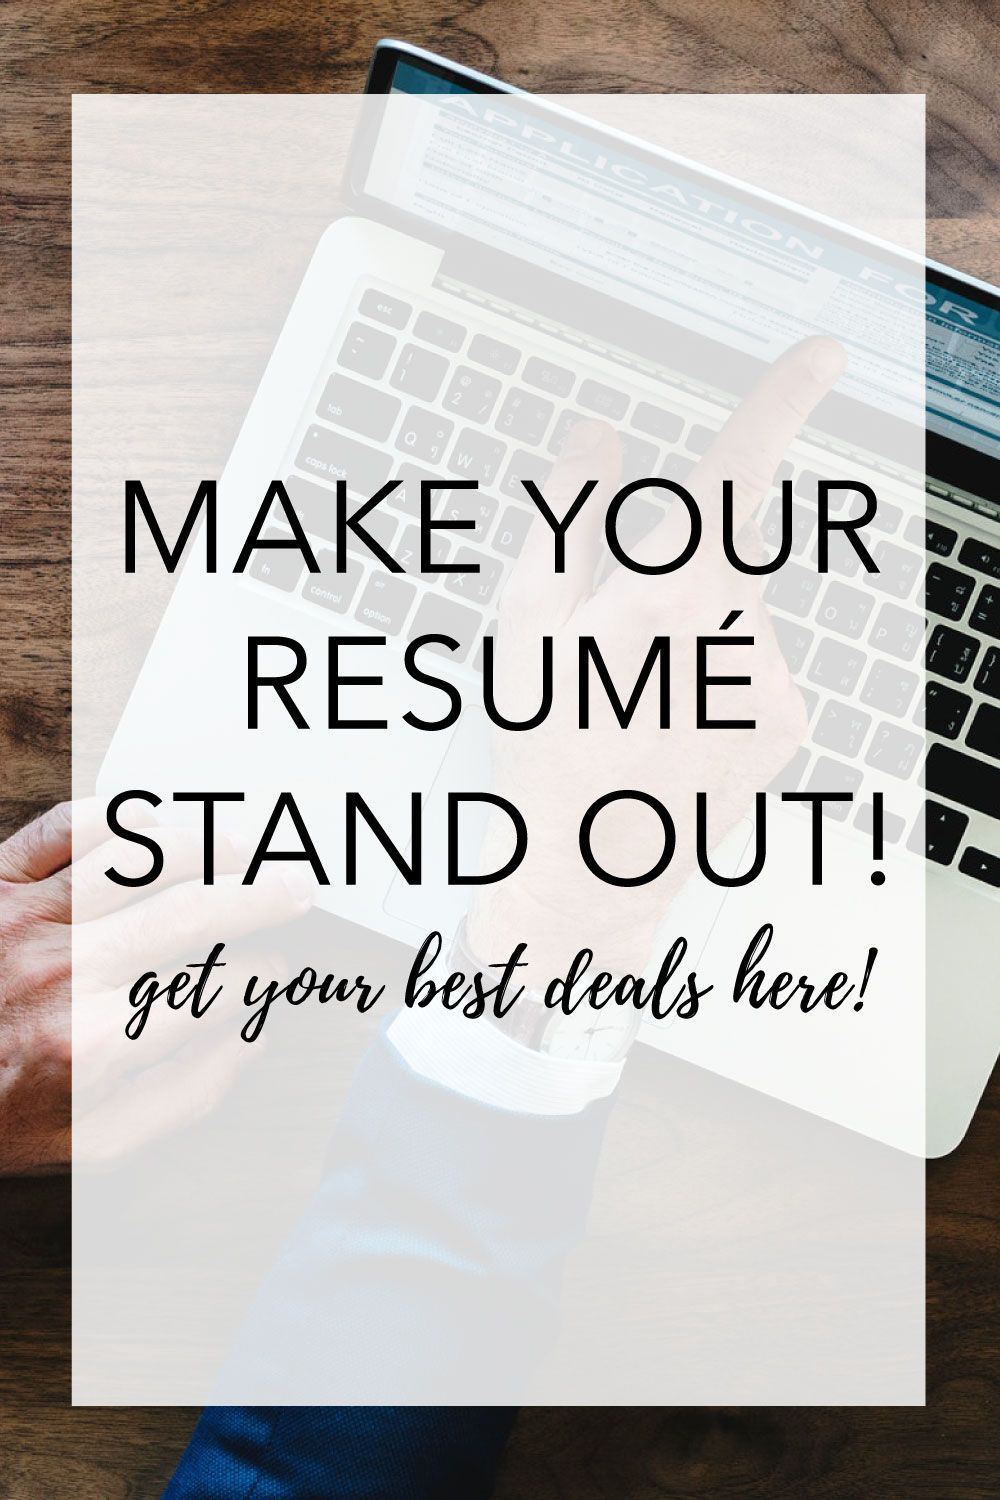 Resumes Resume, Successful business tips, How to